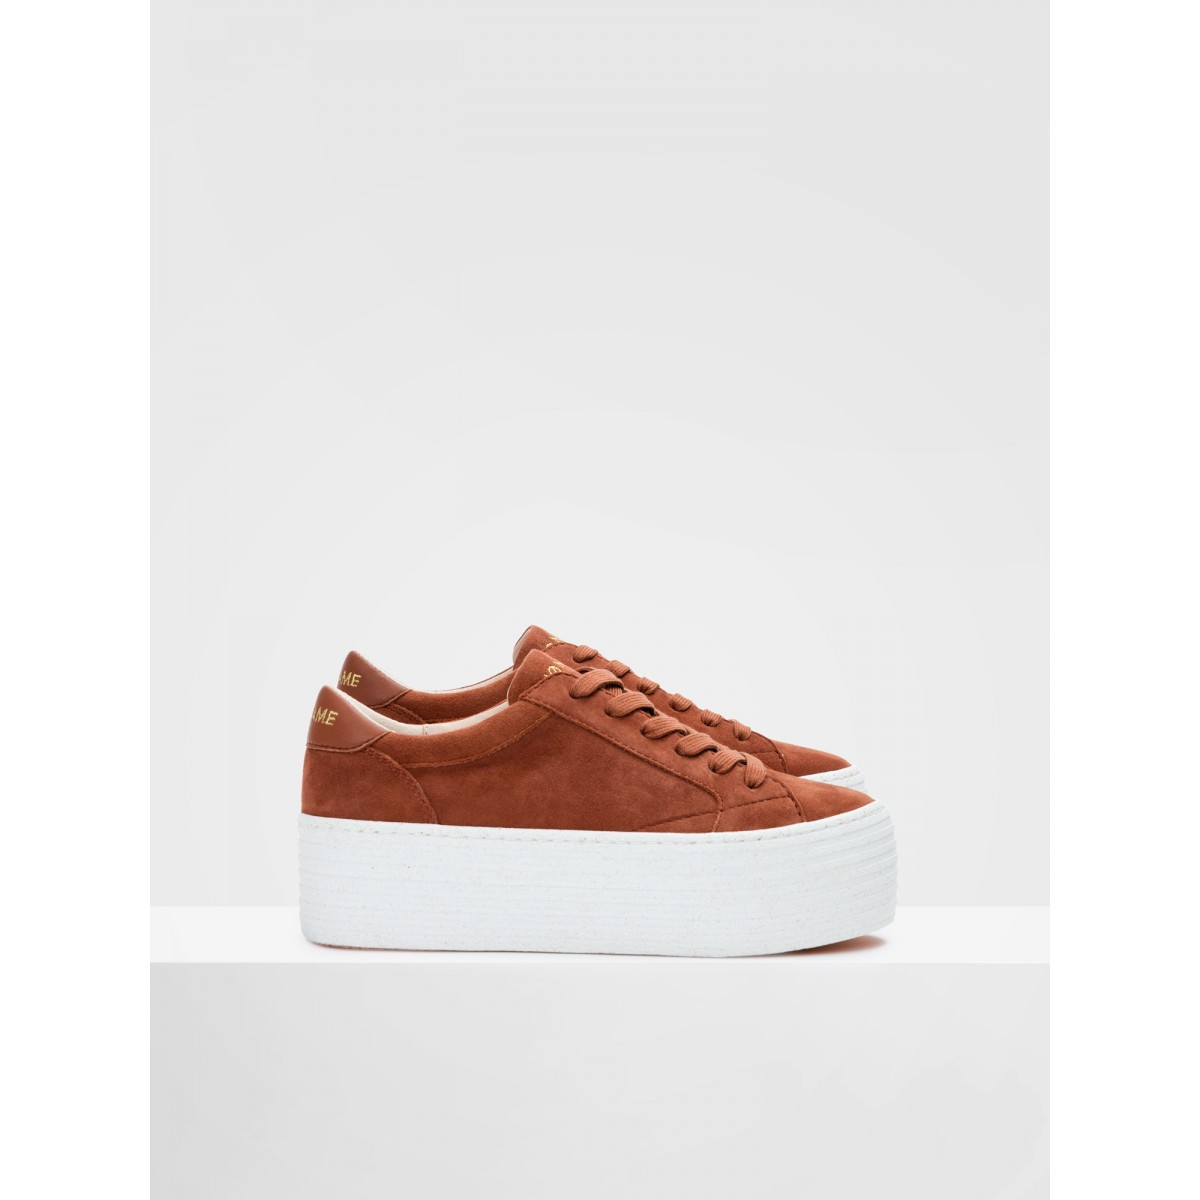 No Name SPICE SNEAKER - GOAT SUEDE - SIENNA